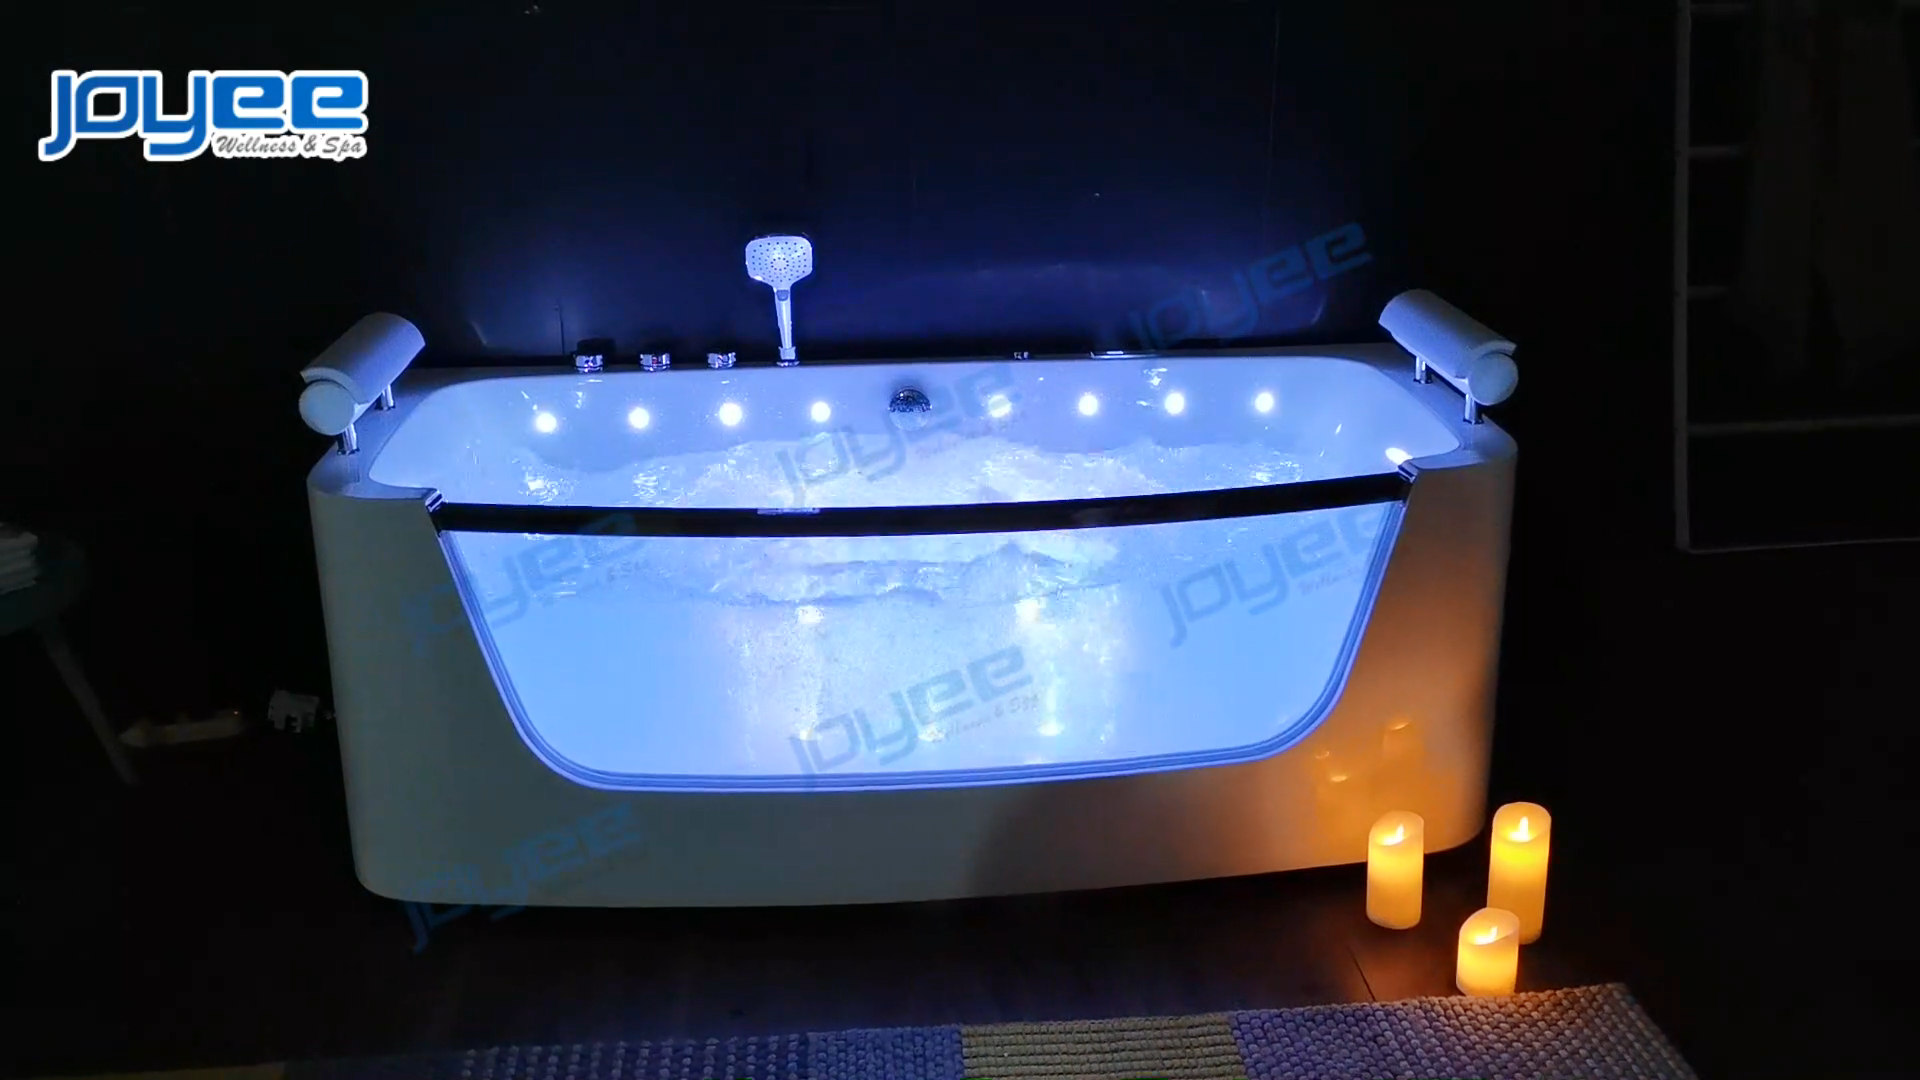 JOYEE New design indoor whirlpool bath tub acrylic massage bathtubs for 2 adults with pillow and led massage jets with glass